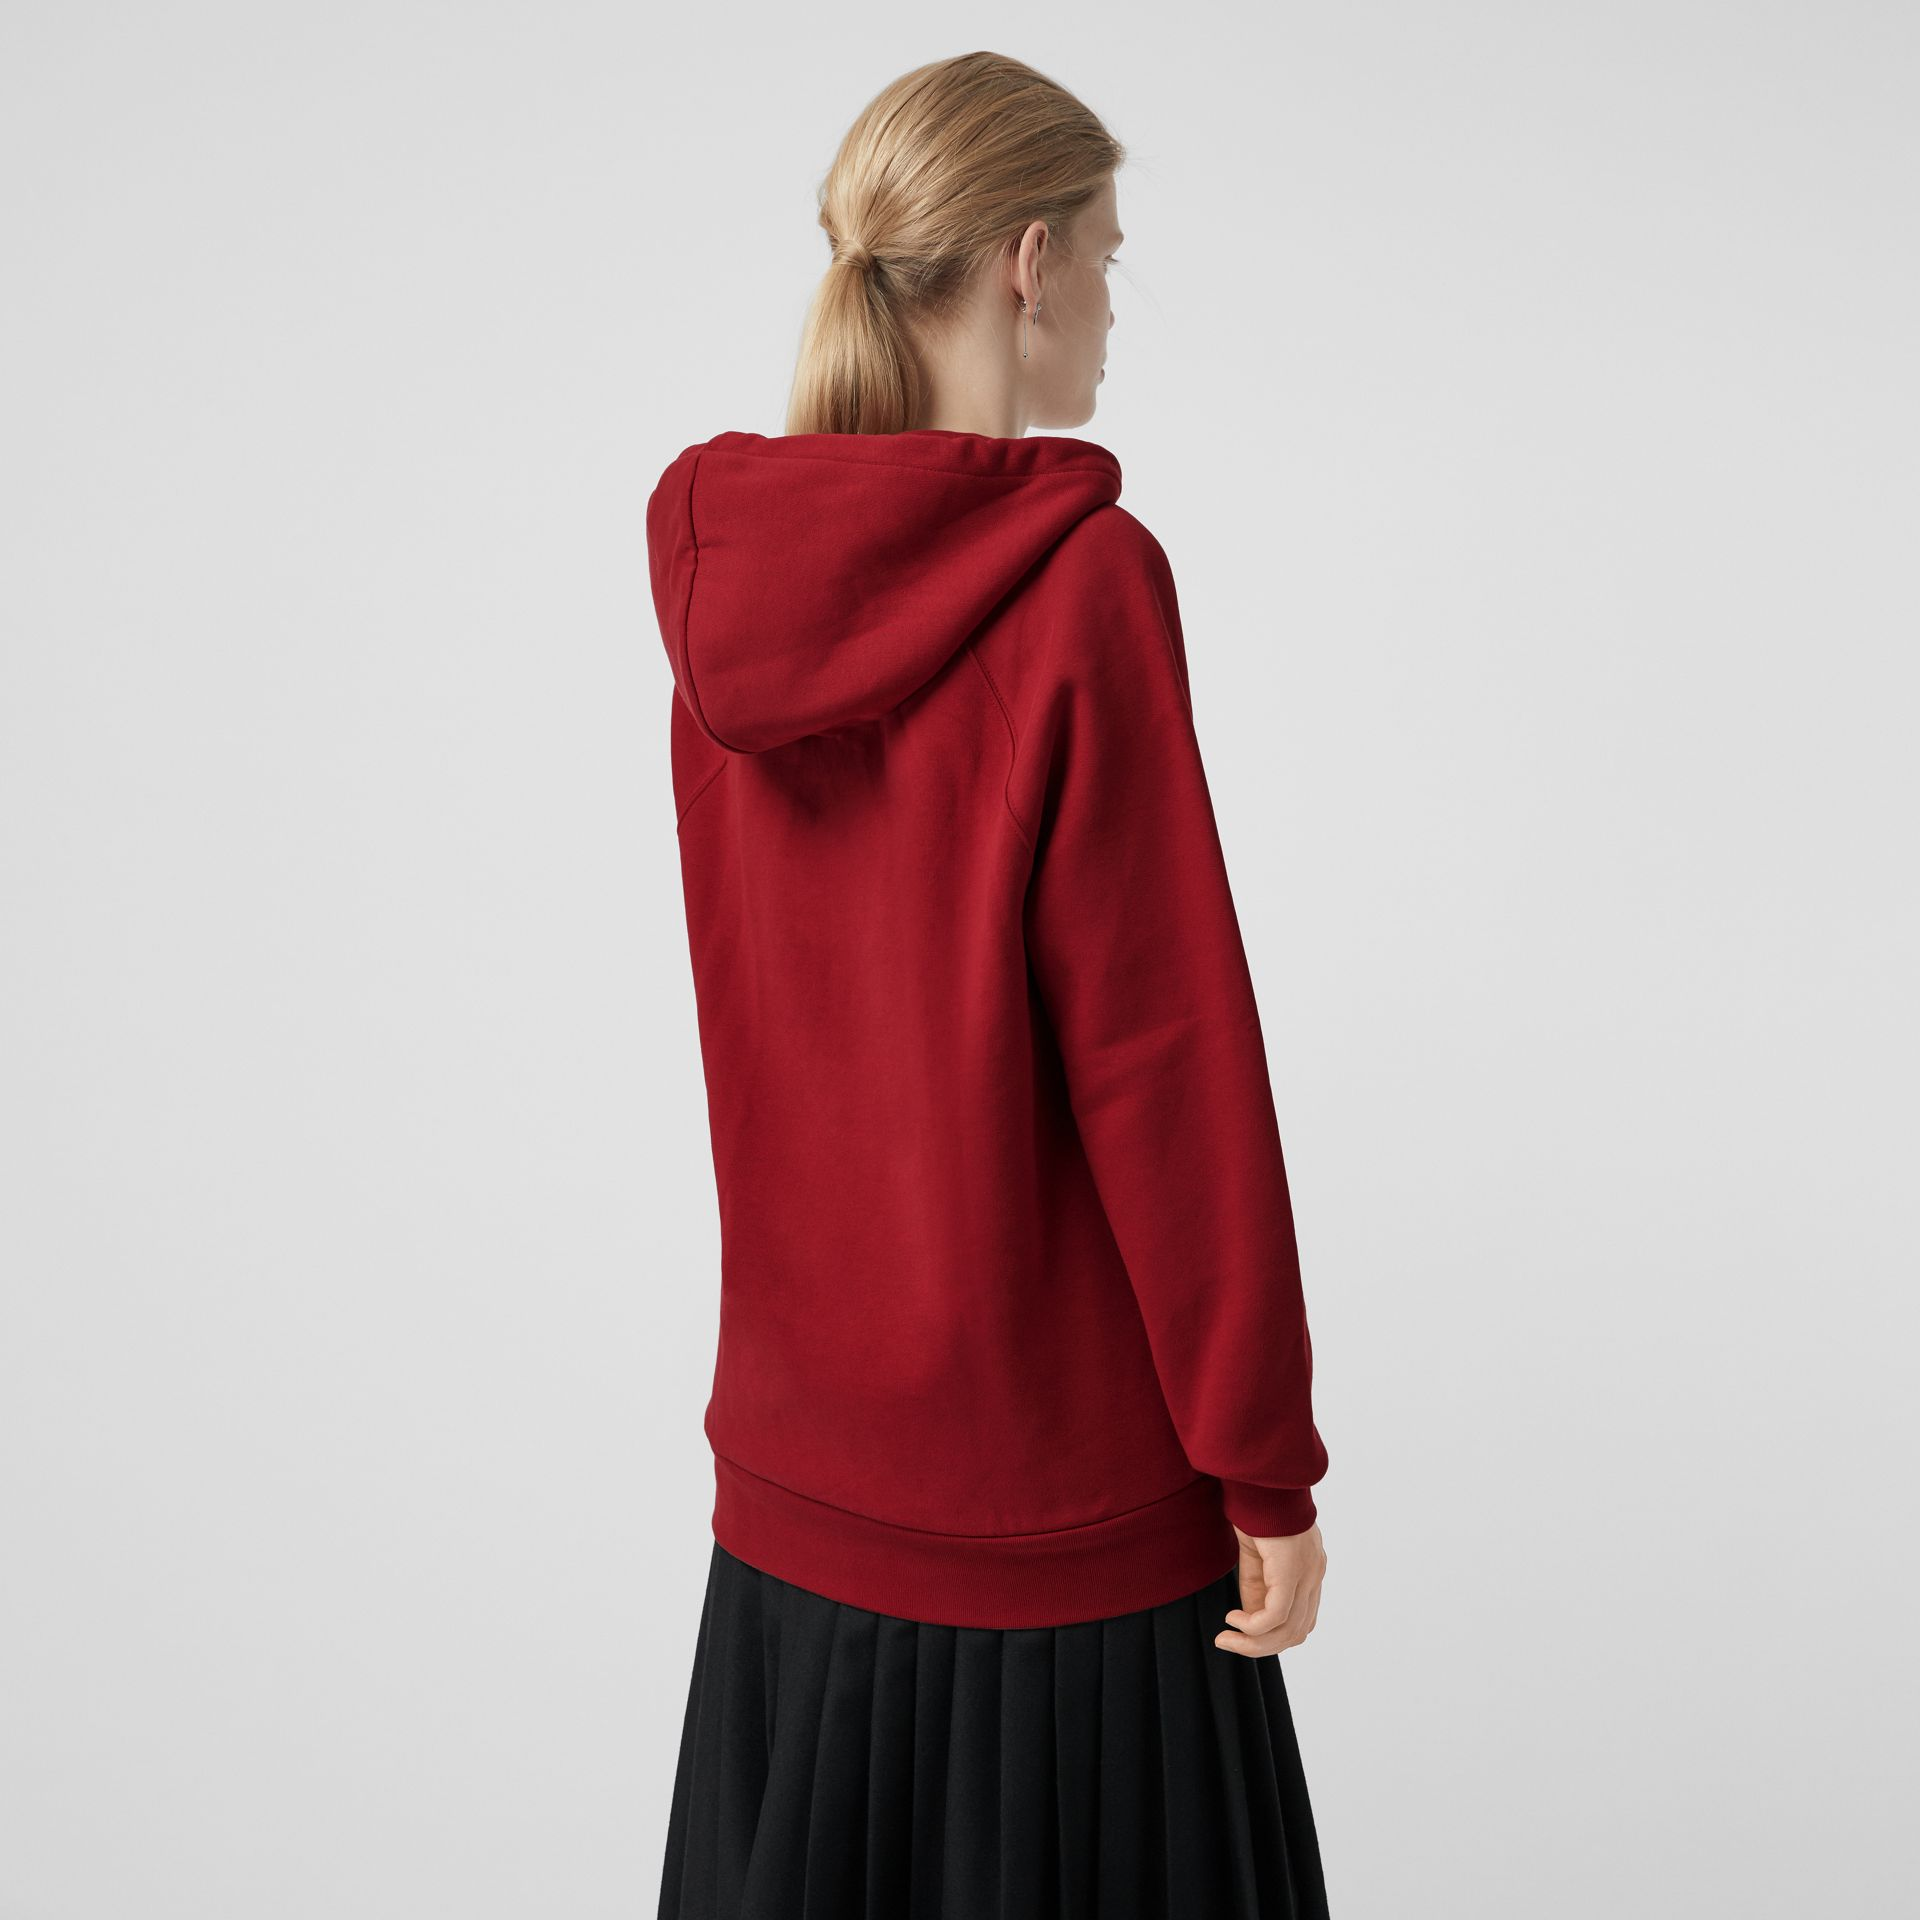 Embroidered Hooded Sweatshirt in Parade Red - Women | Burberry United Kingdom - gallery image 2